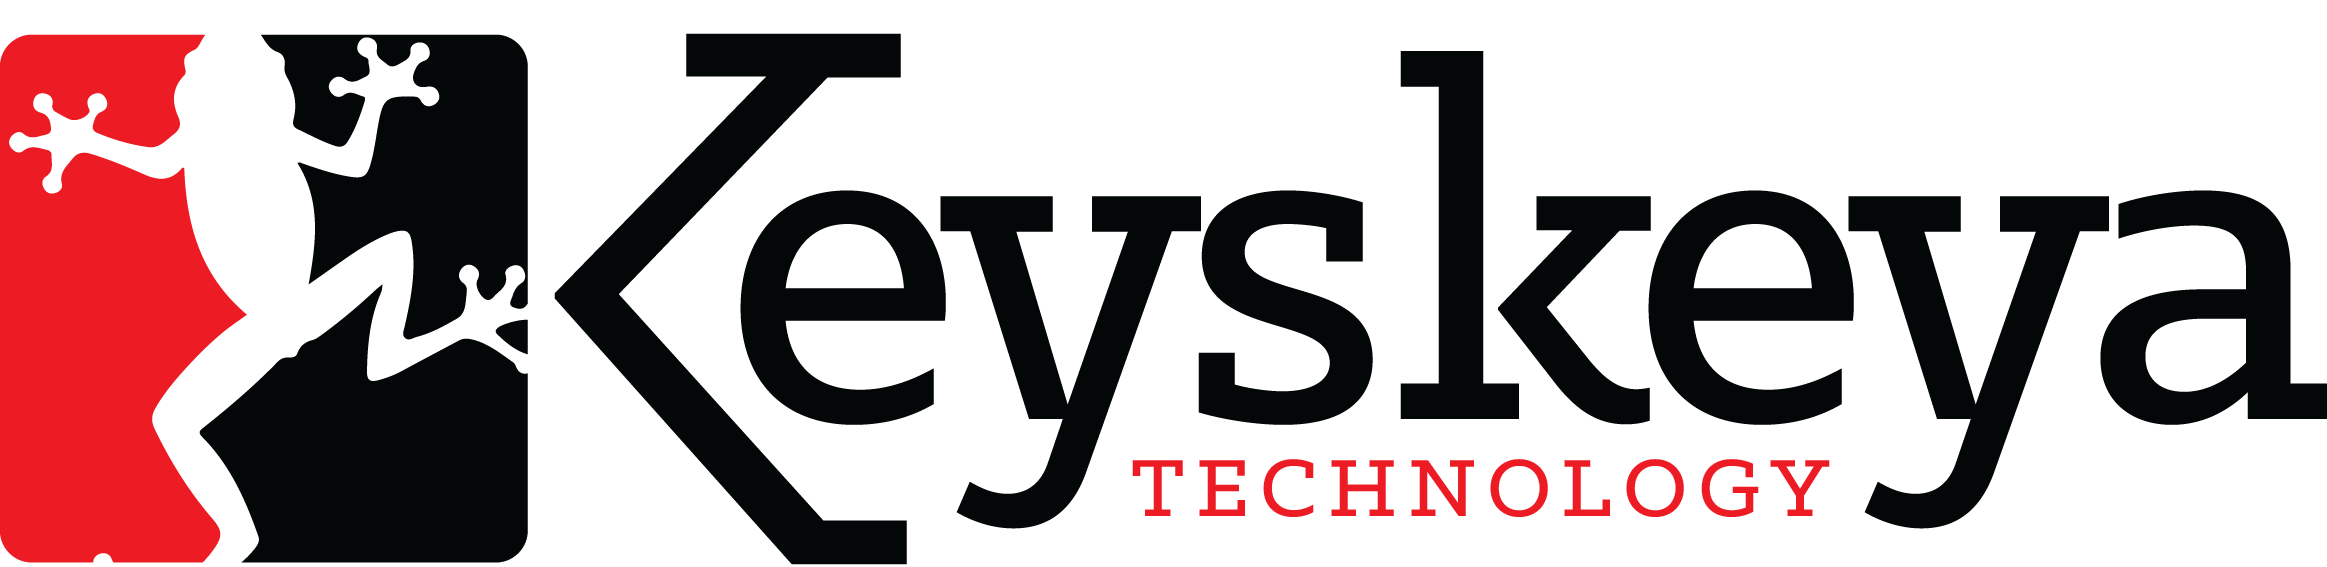 Keyskeya Technology